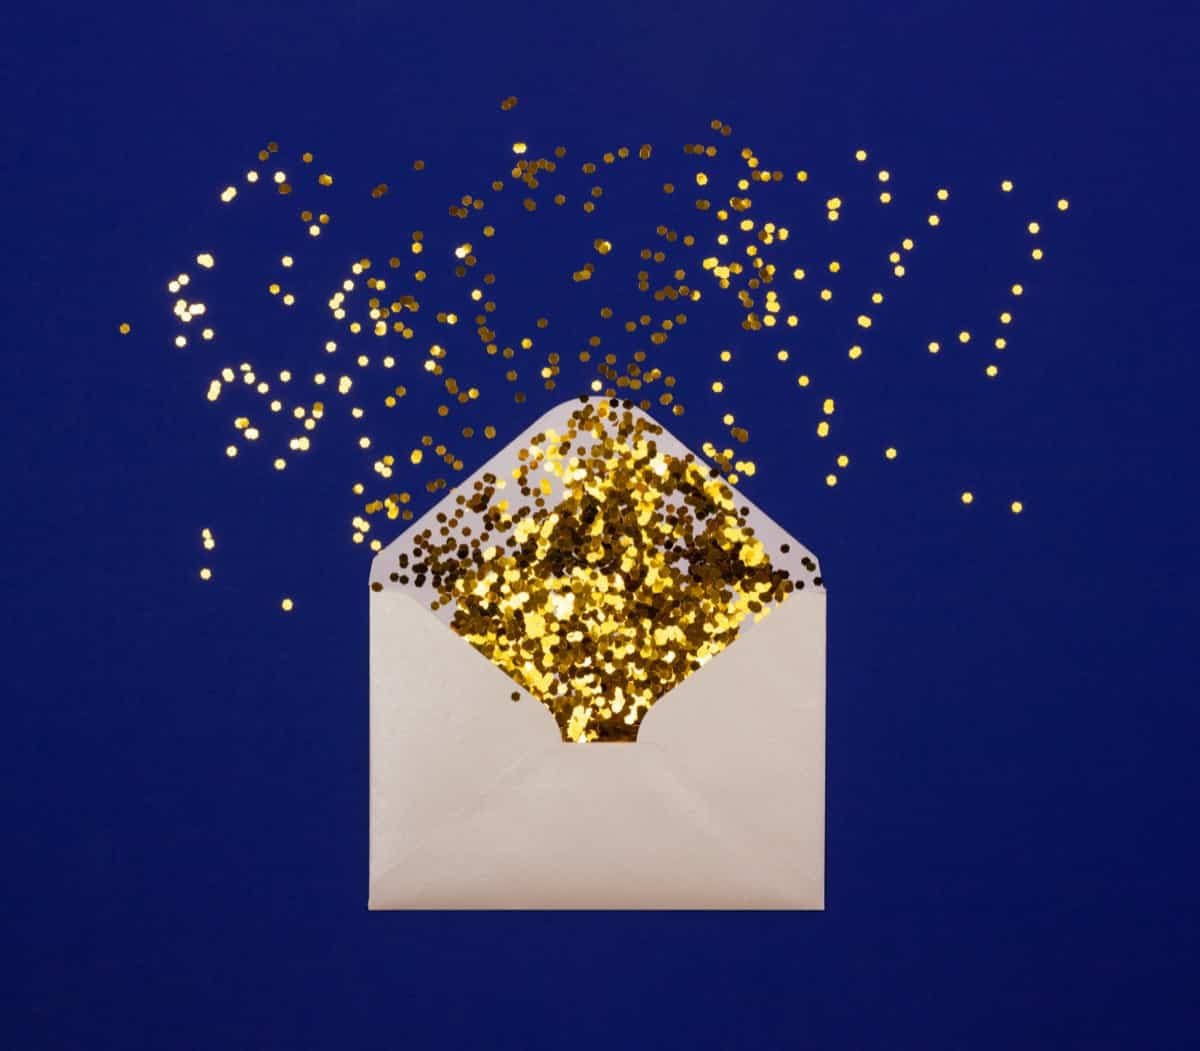 Envelope full of gold glitter against blue background